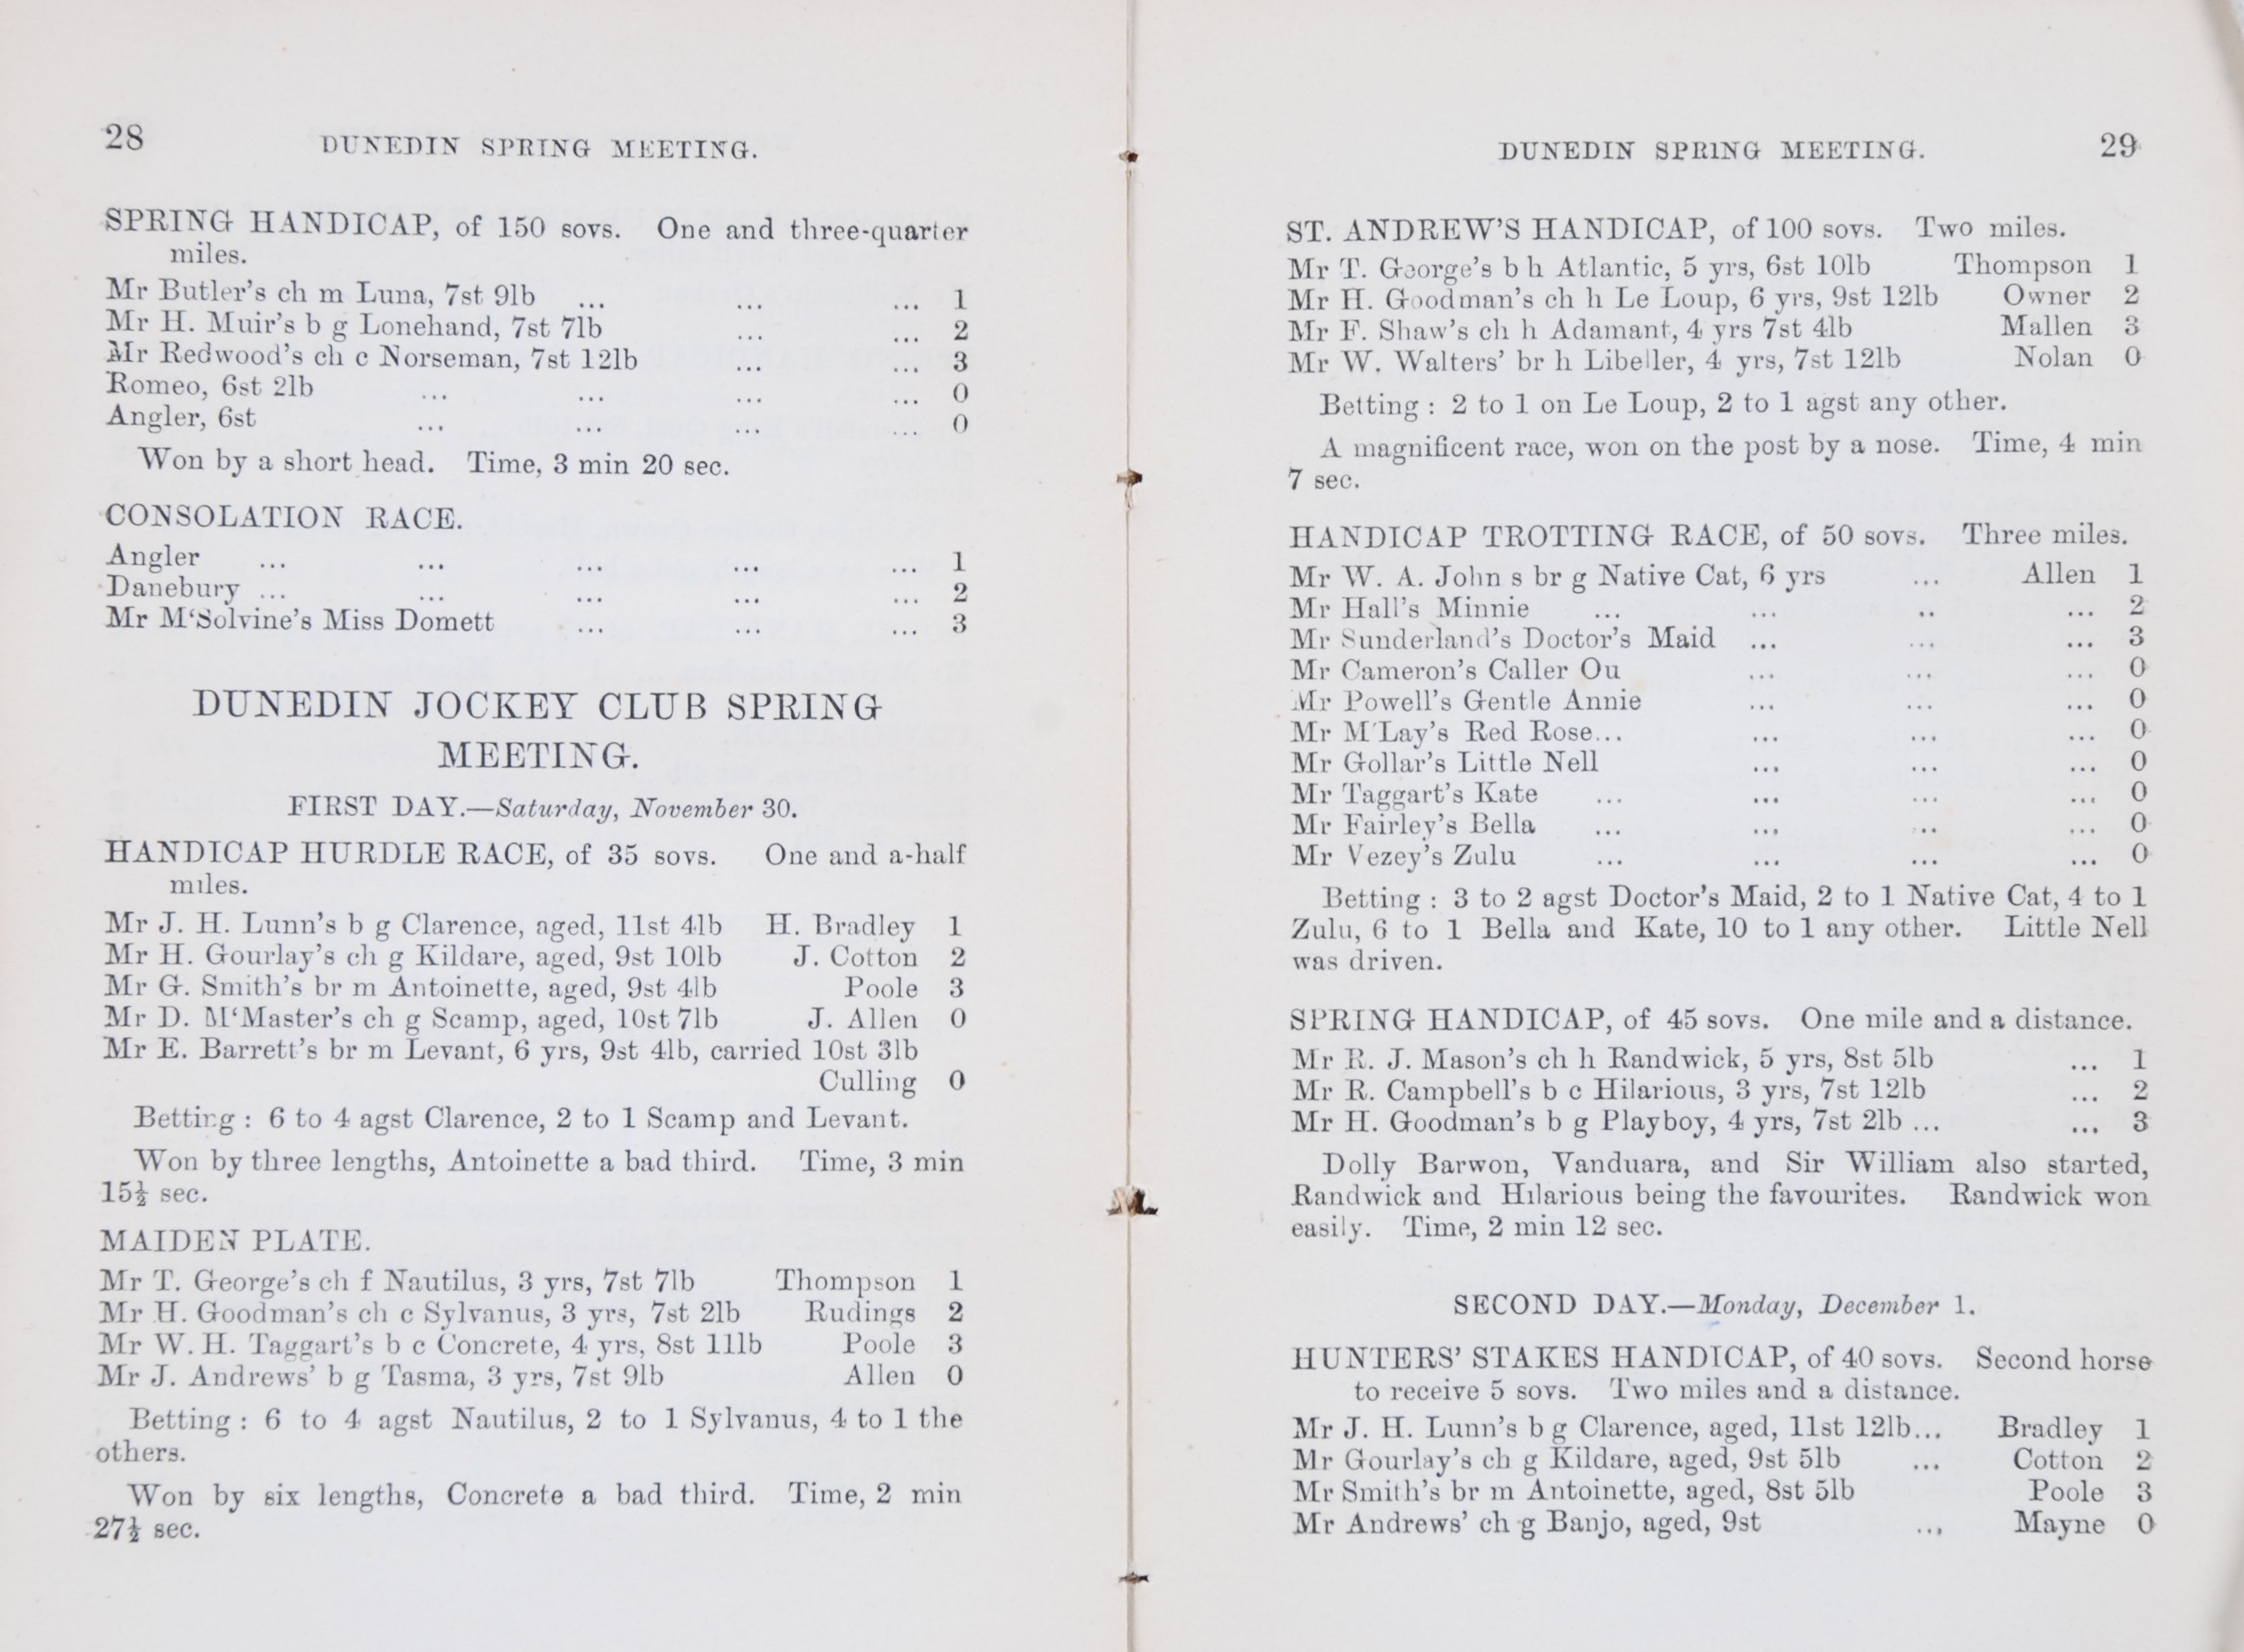 New Zealand Turf Register.  Christchurch, N.Z.: Christchurch Press Co., 1881 and 1908.